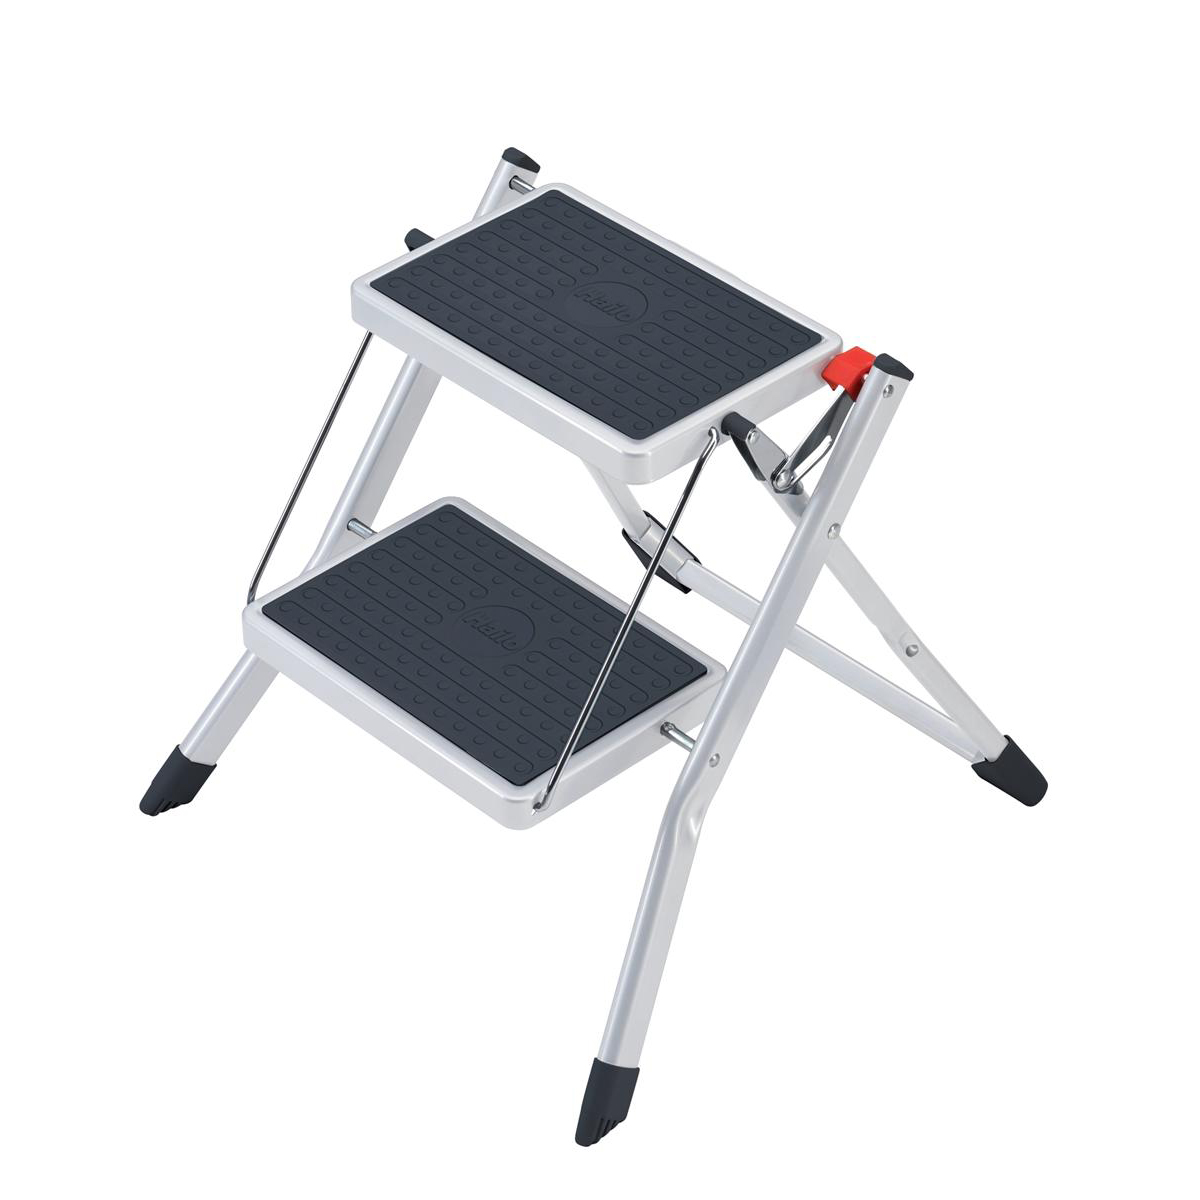 Step Stools 5 Star Facilities Mini Stool/Ladder Two Step Steel Folding Single Sided Load Capacity 150kg